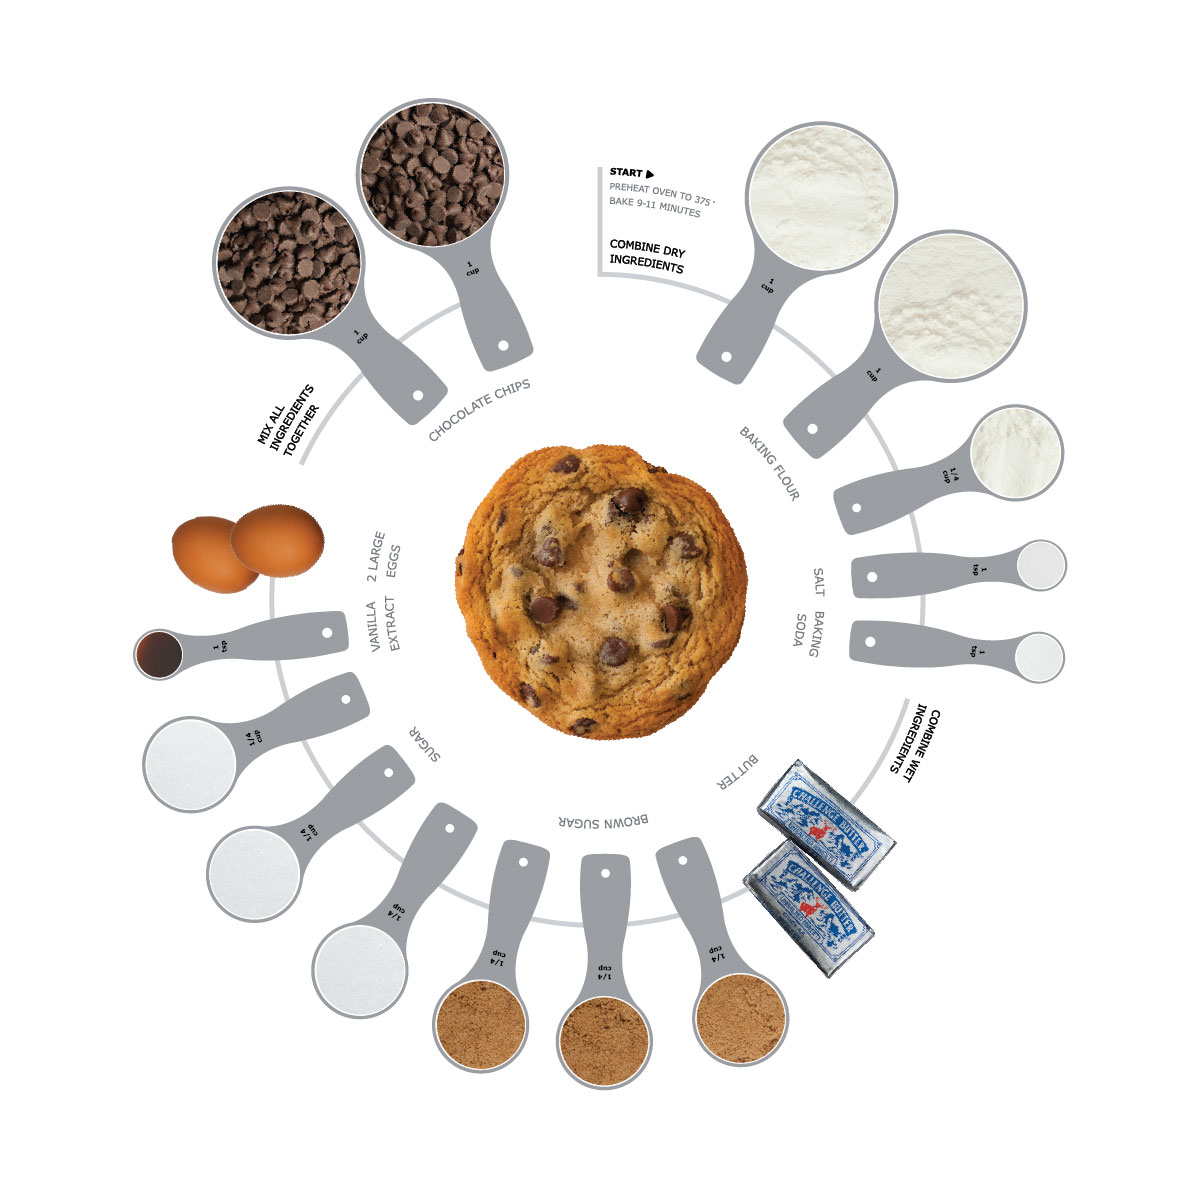 Cookiegraphic-ChocolateChip-INGRED-SS_1200px.jpg